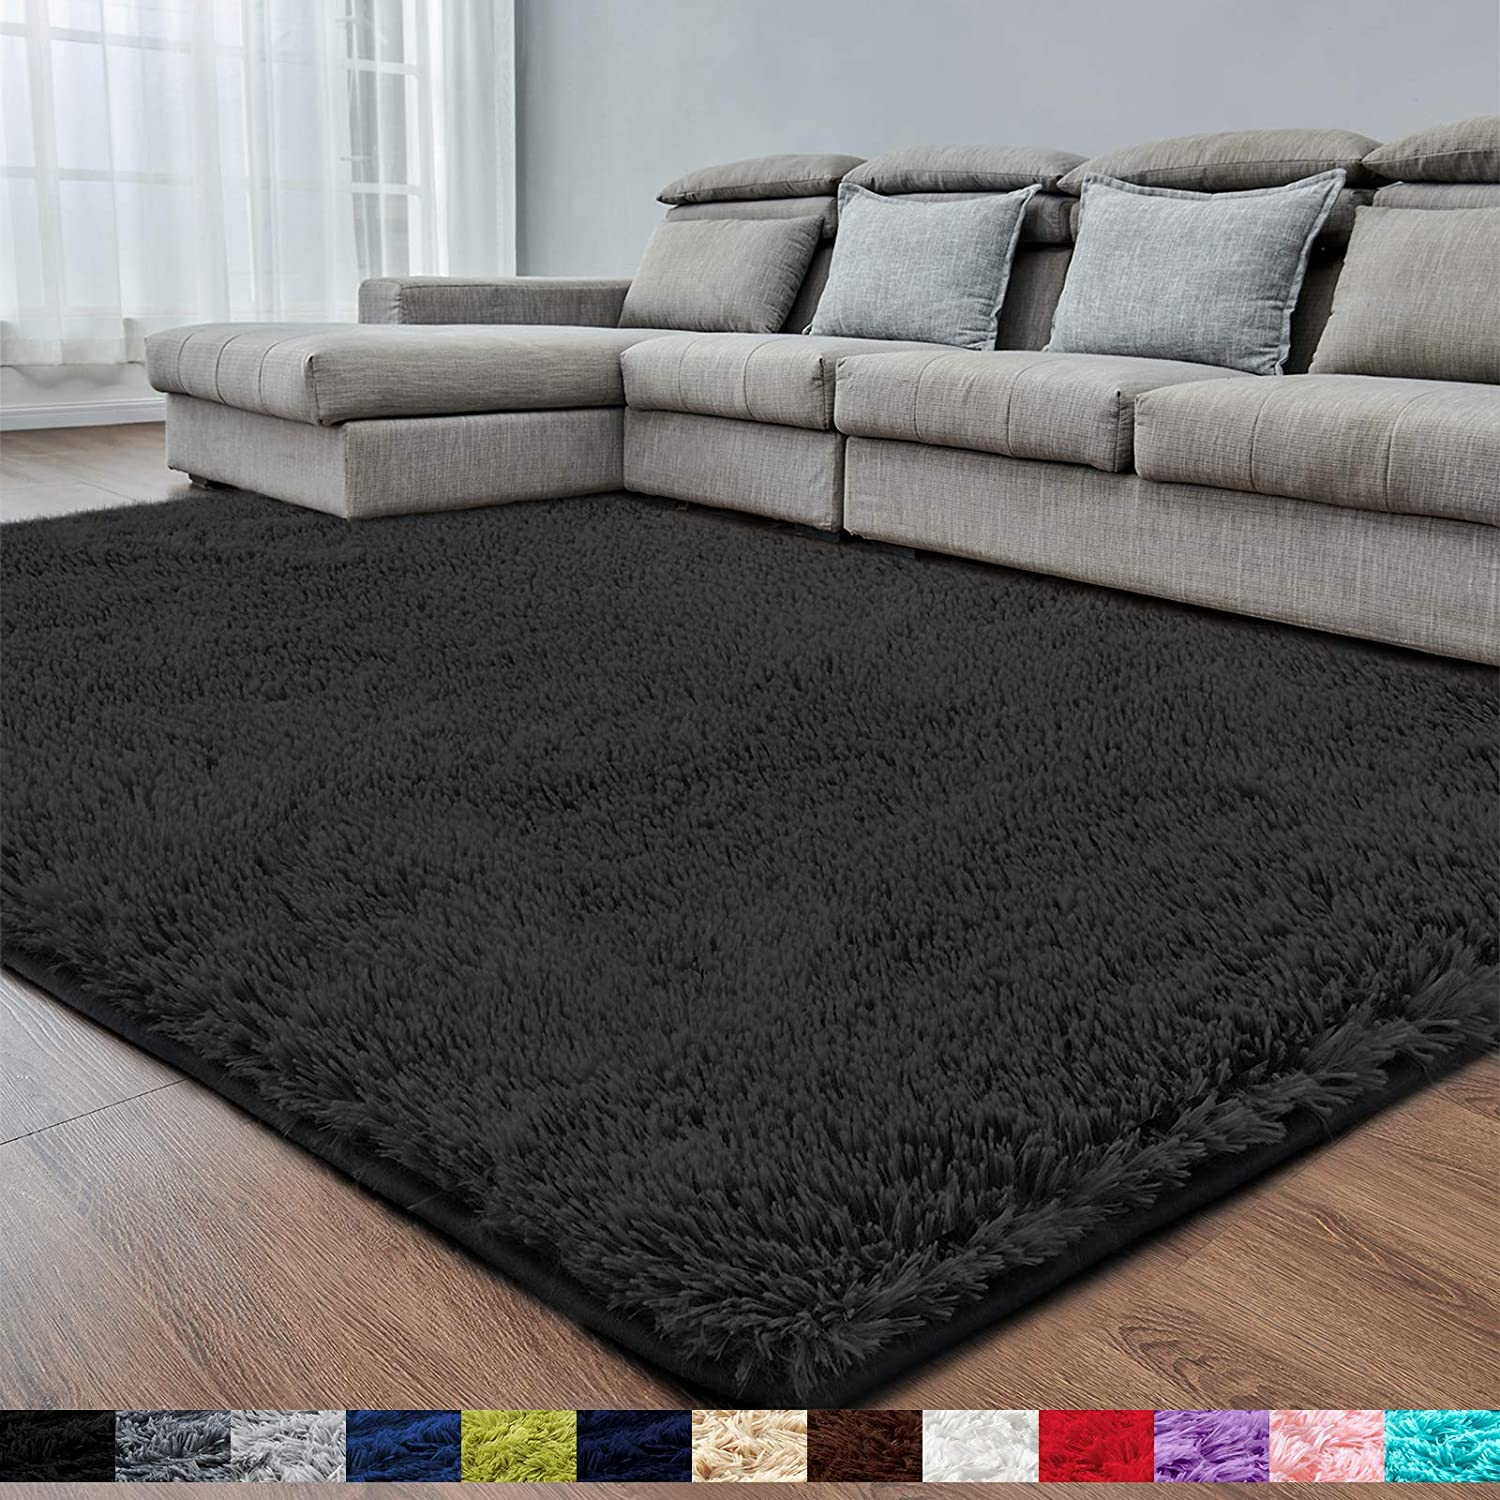 Bedroom 5x8 6 Fluffy Rugs Carpet, Soft Area Rugs For Living Room